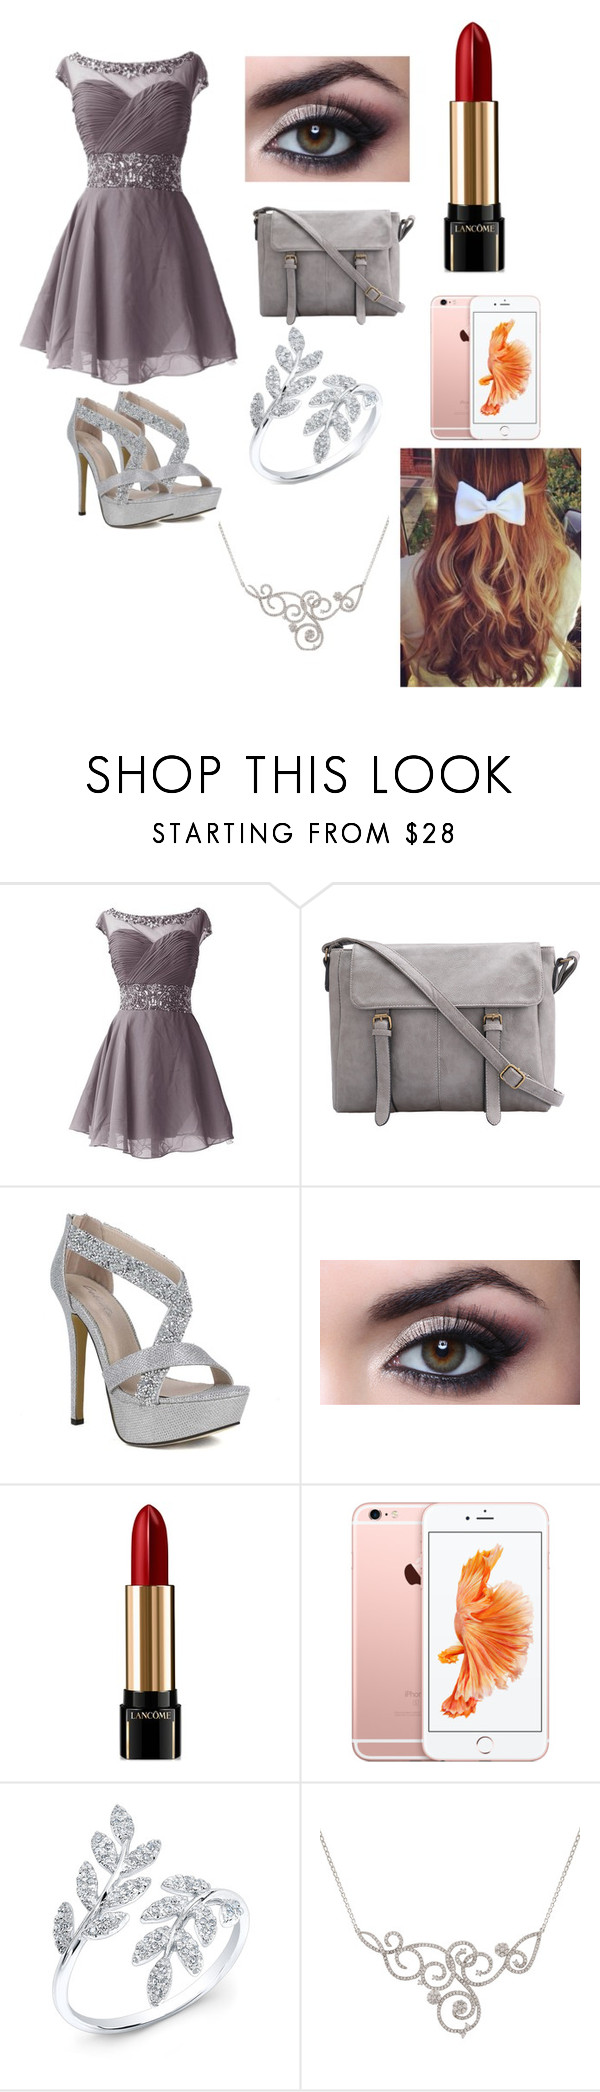 """""""Going to eat out with friends at a fancy restaurant"""" by tjgarcia104 ❤ liked on Polyvore featuring Lancôme"""